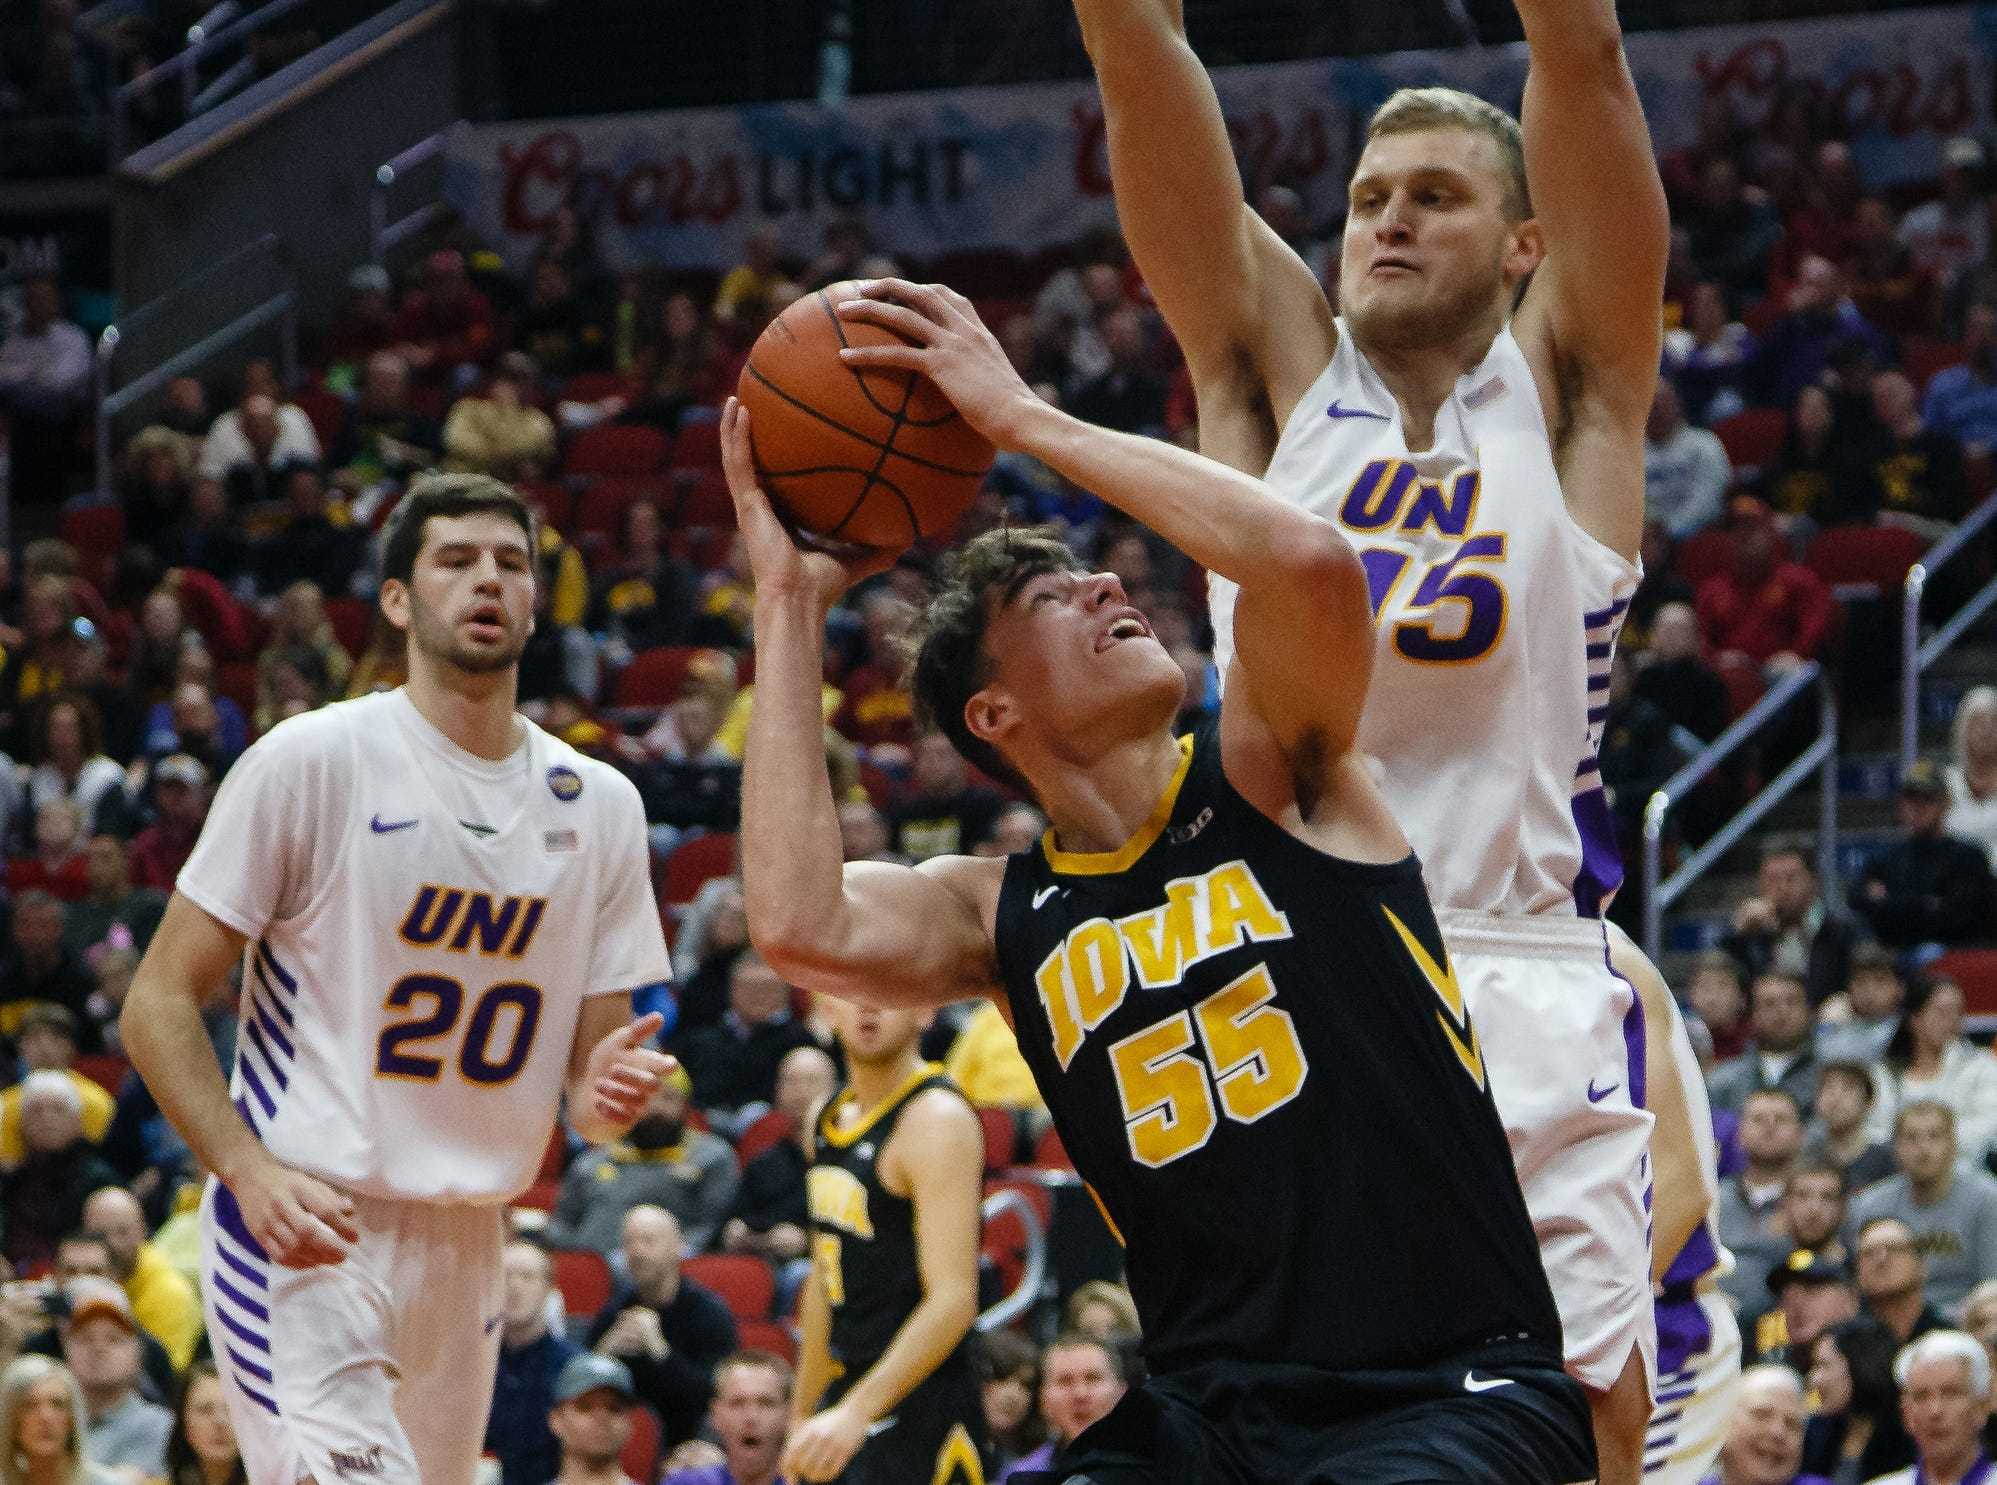 Iowa's Luka Garza (55) tries to get a shot off around UNI's JustinÊDahl (15) during their basketball game at the Hy-Vee Classic on Saturday, Dec. 15, 2018, in Des Moines. Iowa takes a 39-18 lead over UNI into halftime.